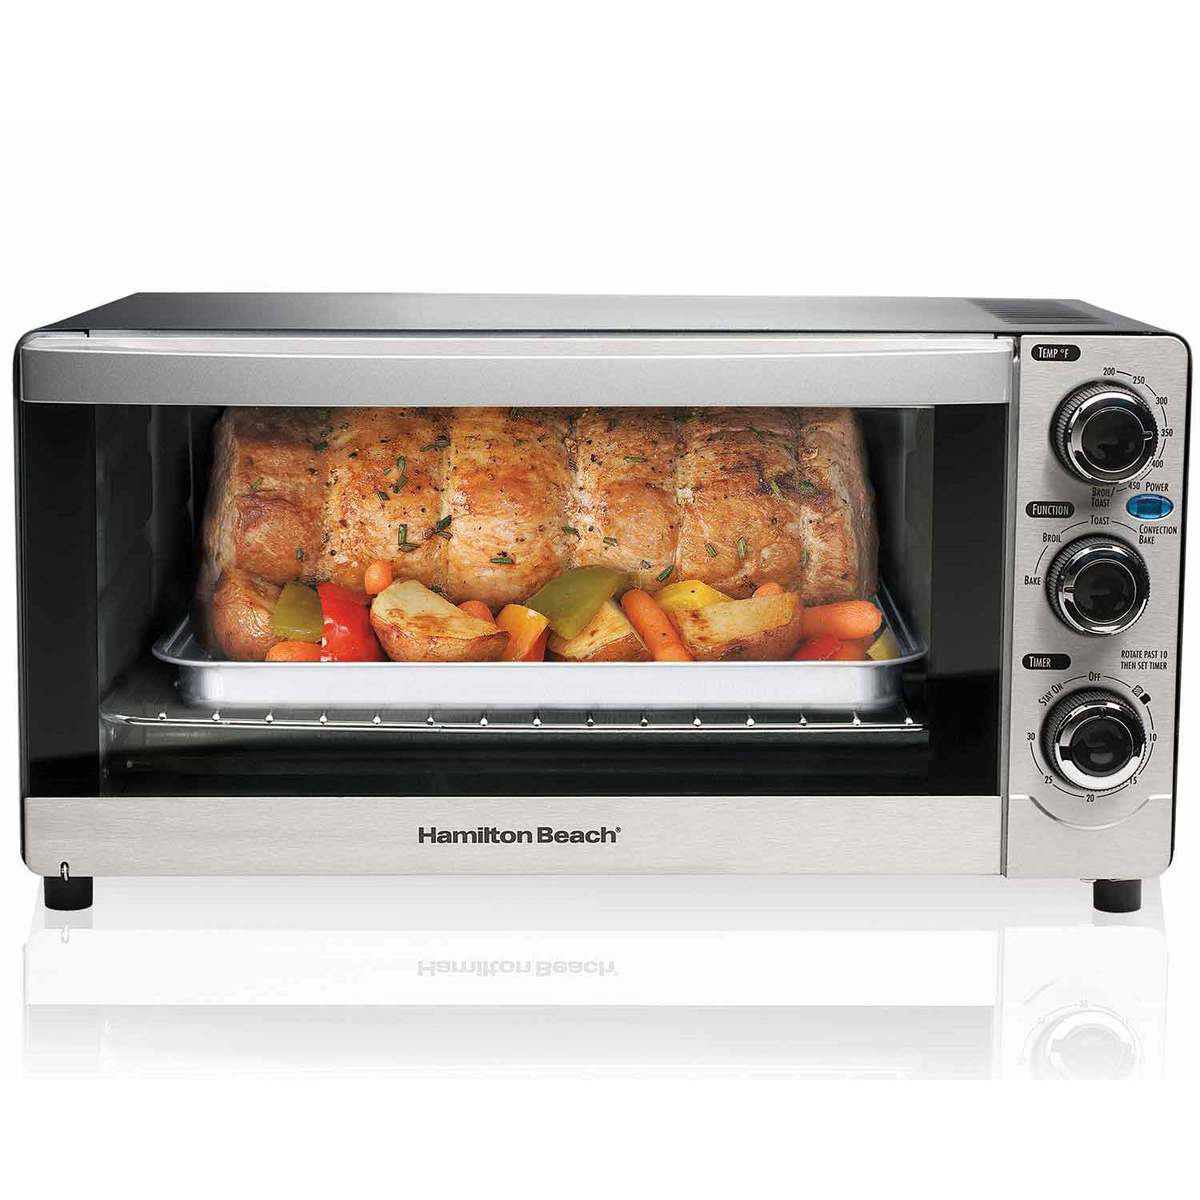 6 Slice Toaster / Broiler Oven (31809)